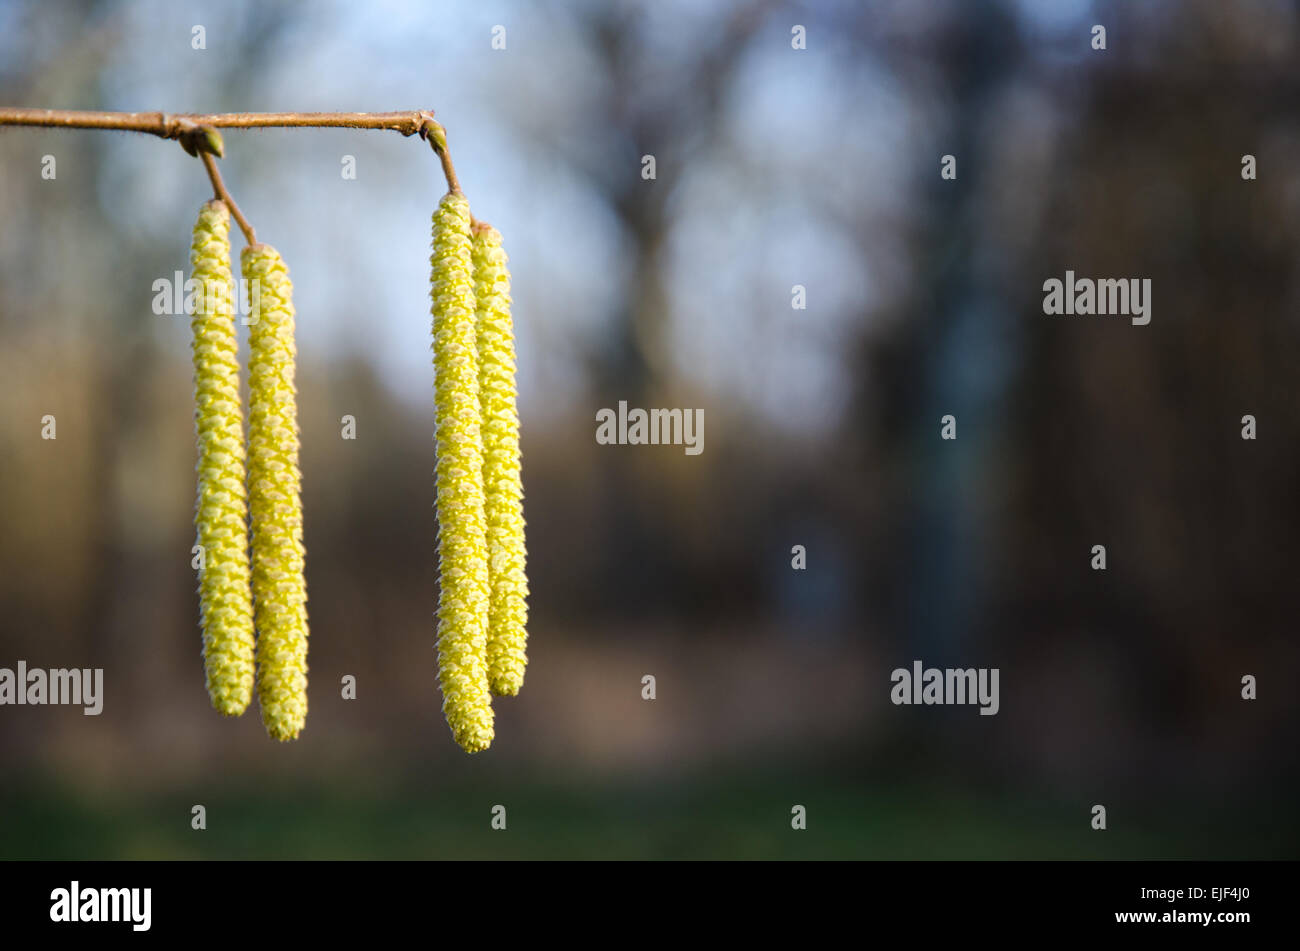 Hazel twig with blossom yellow hanging flowers - Stock Image